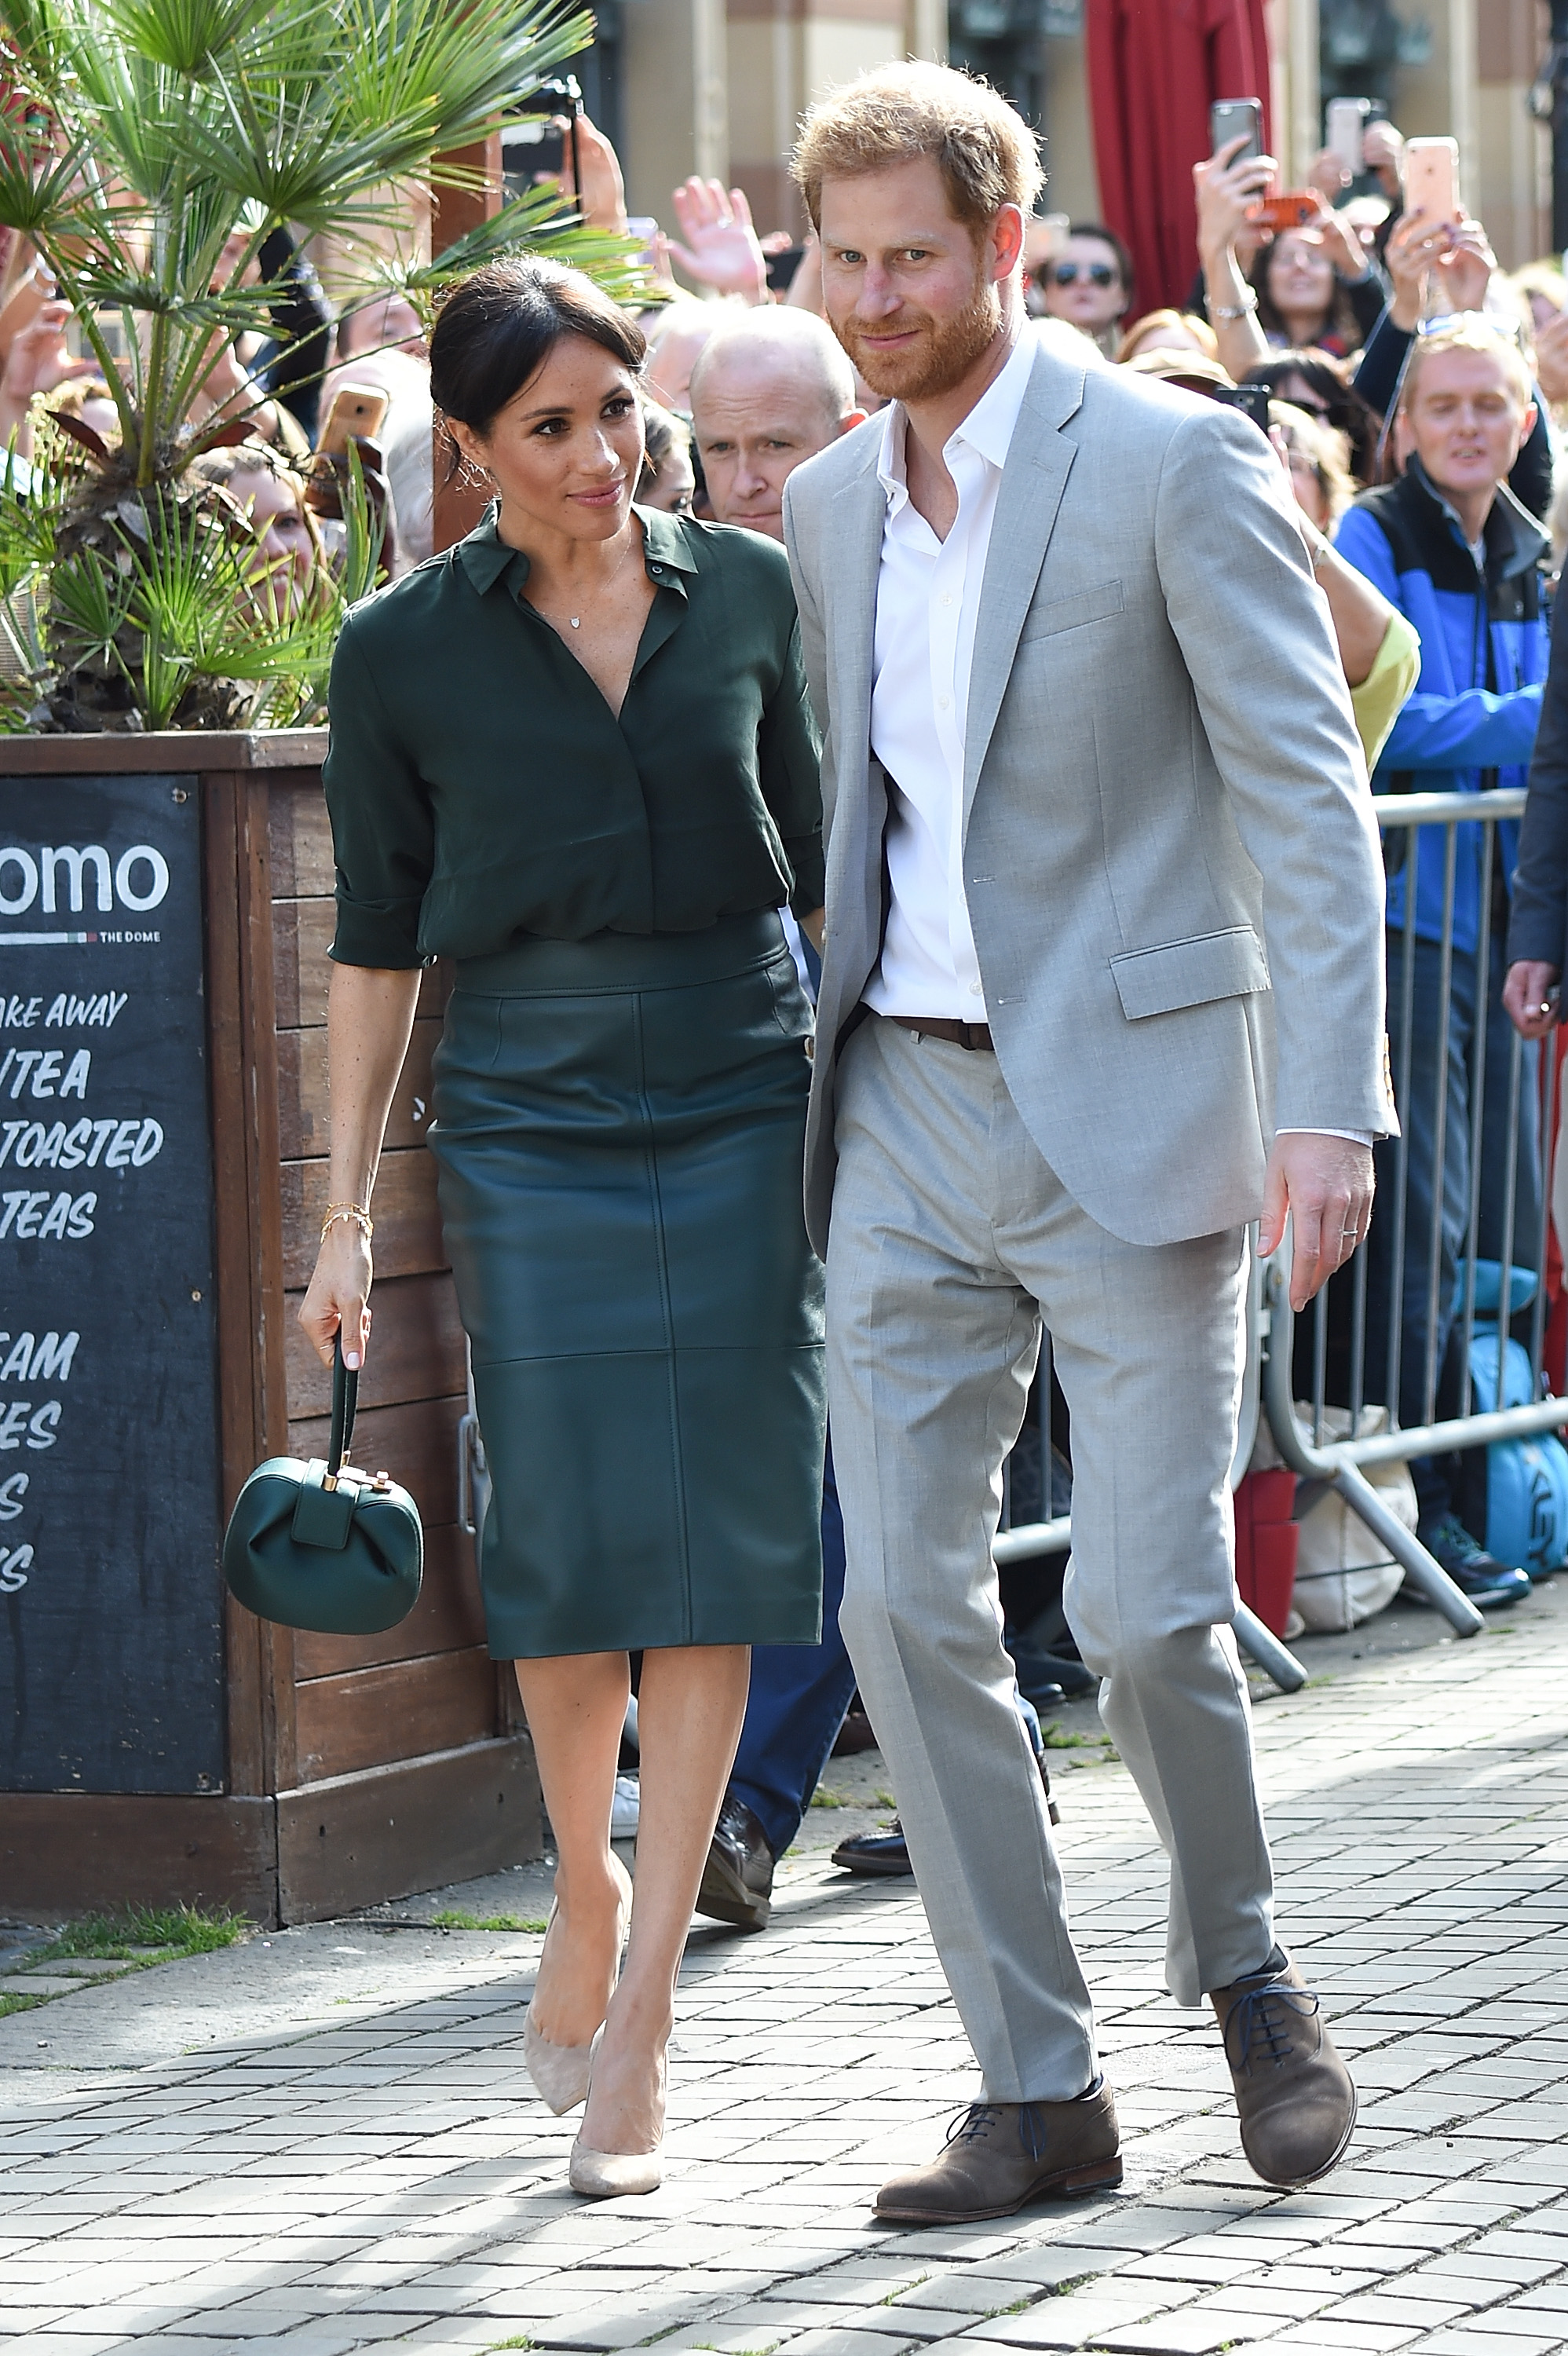 BRIGHTON, ENGLAND - OCTOBER 03: Prince Harry, Duke of Sussex and Meghan, Duchess of Sussex arrive in Brighton during an official visit to Sussex on October 3, 2018 in Brighton, United Kingdom. The Duke and Duchess married on May 19th 2018 in Windsor and were conferred The Duke & Duchess of Sussex by The Queen. (Photo by Tabatha Fireman/Getty Images)